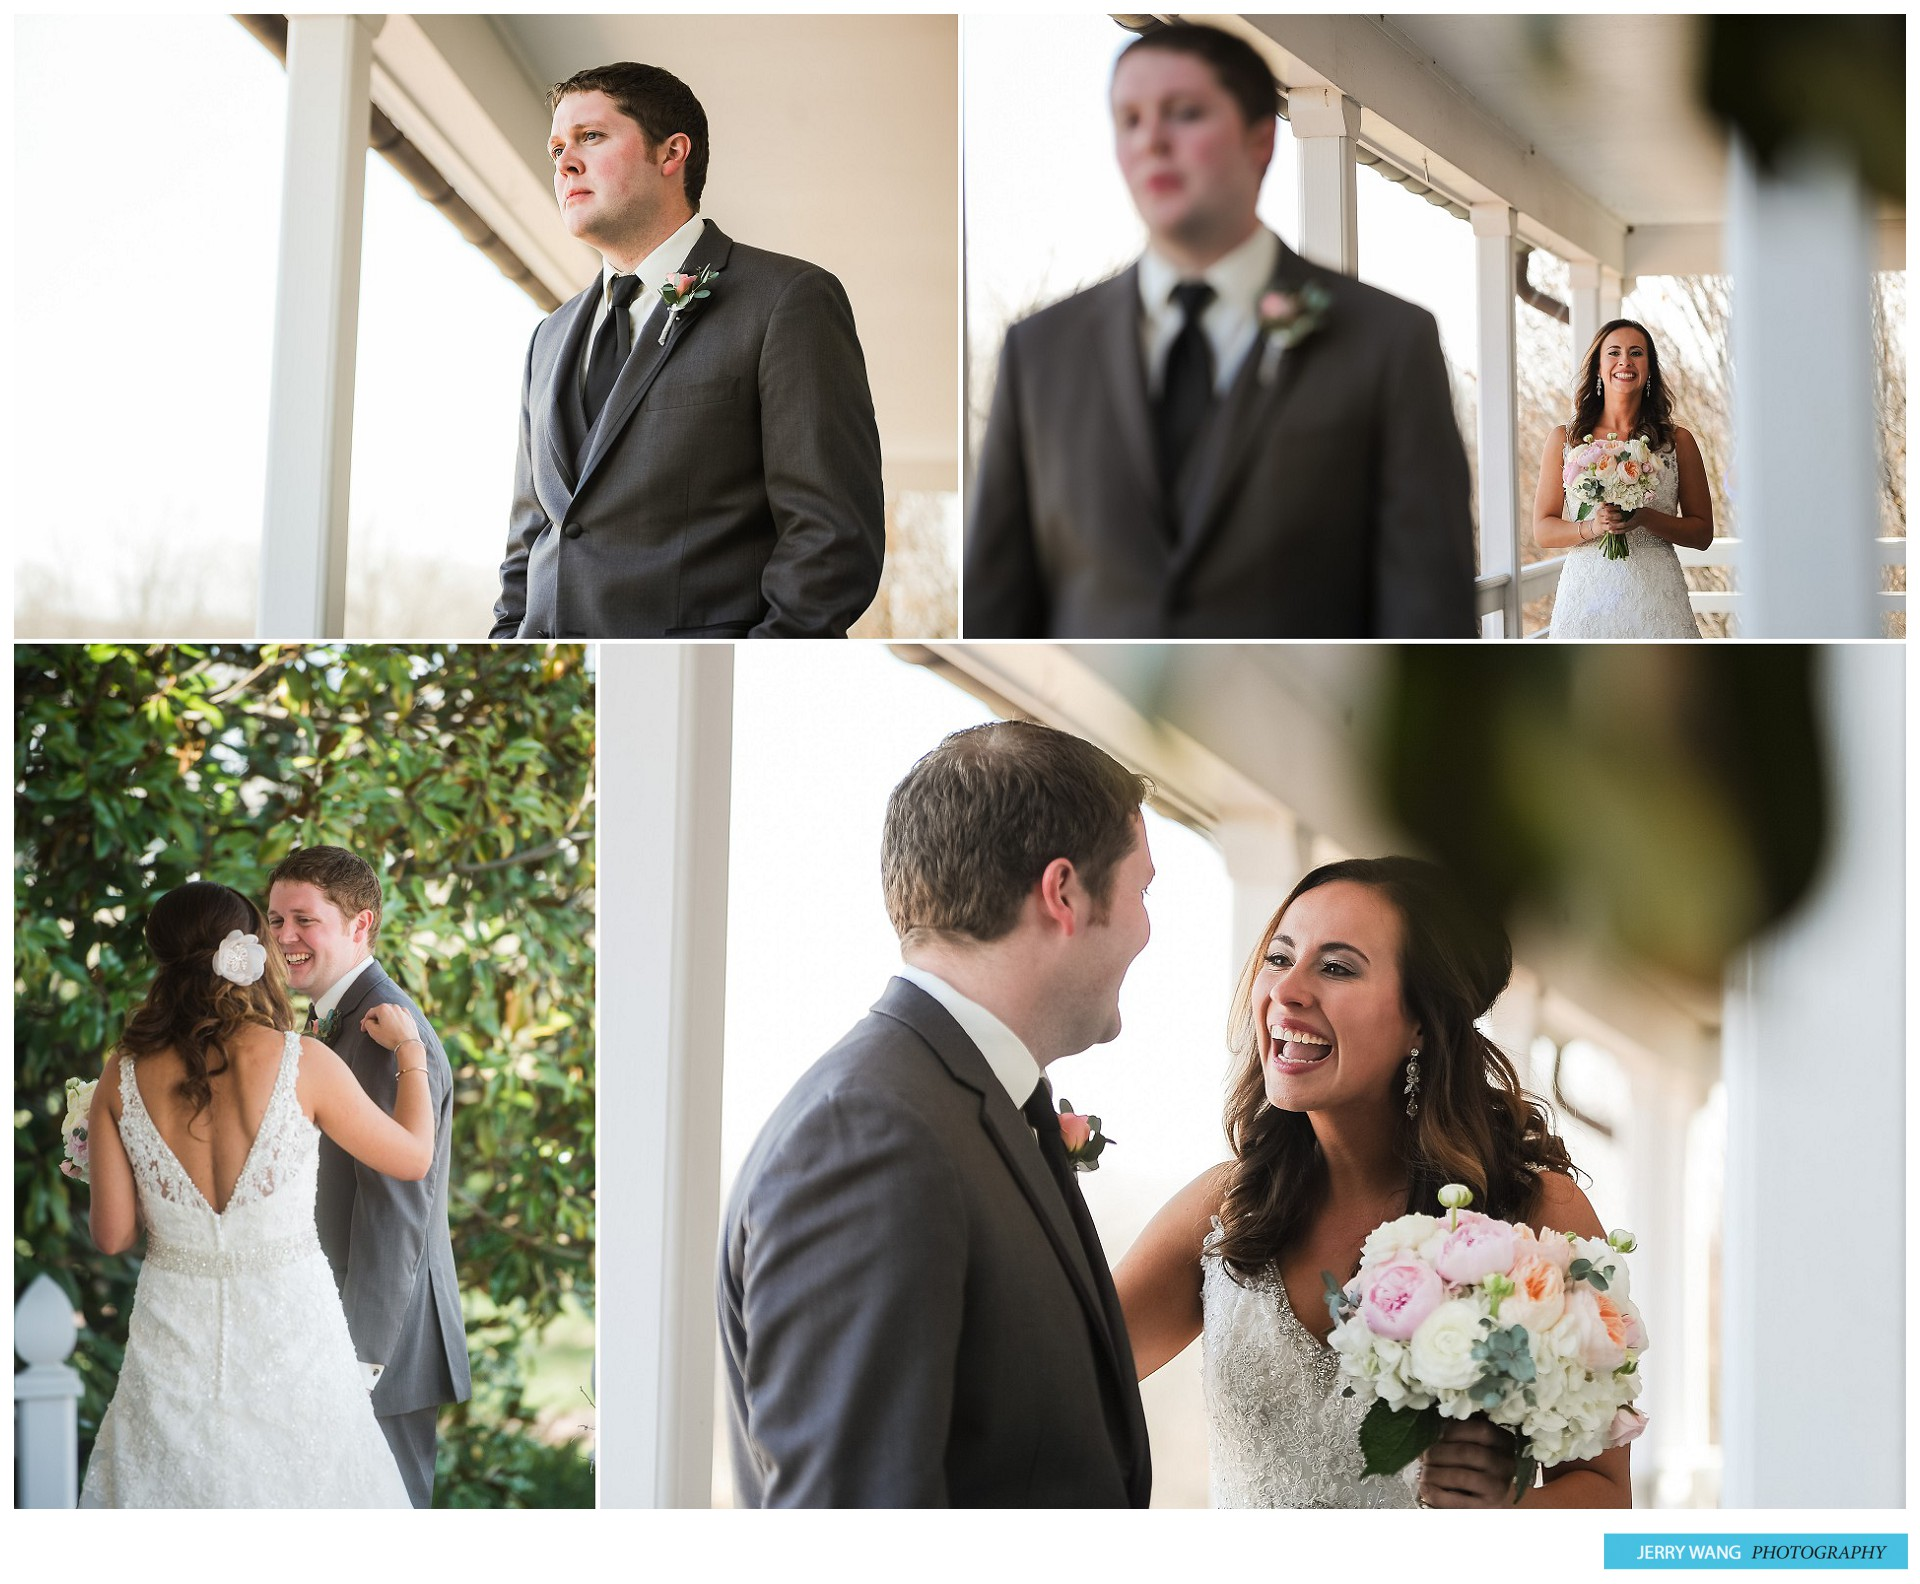 K&J_Mildale Farm Wedding_Bonner Springs_009